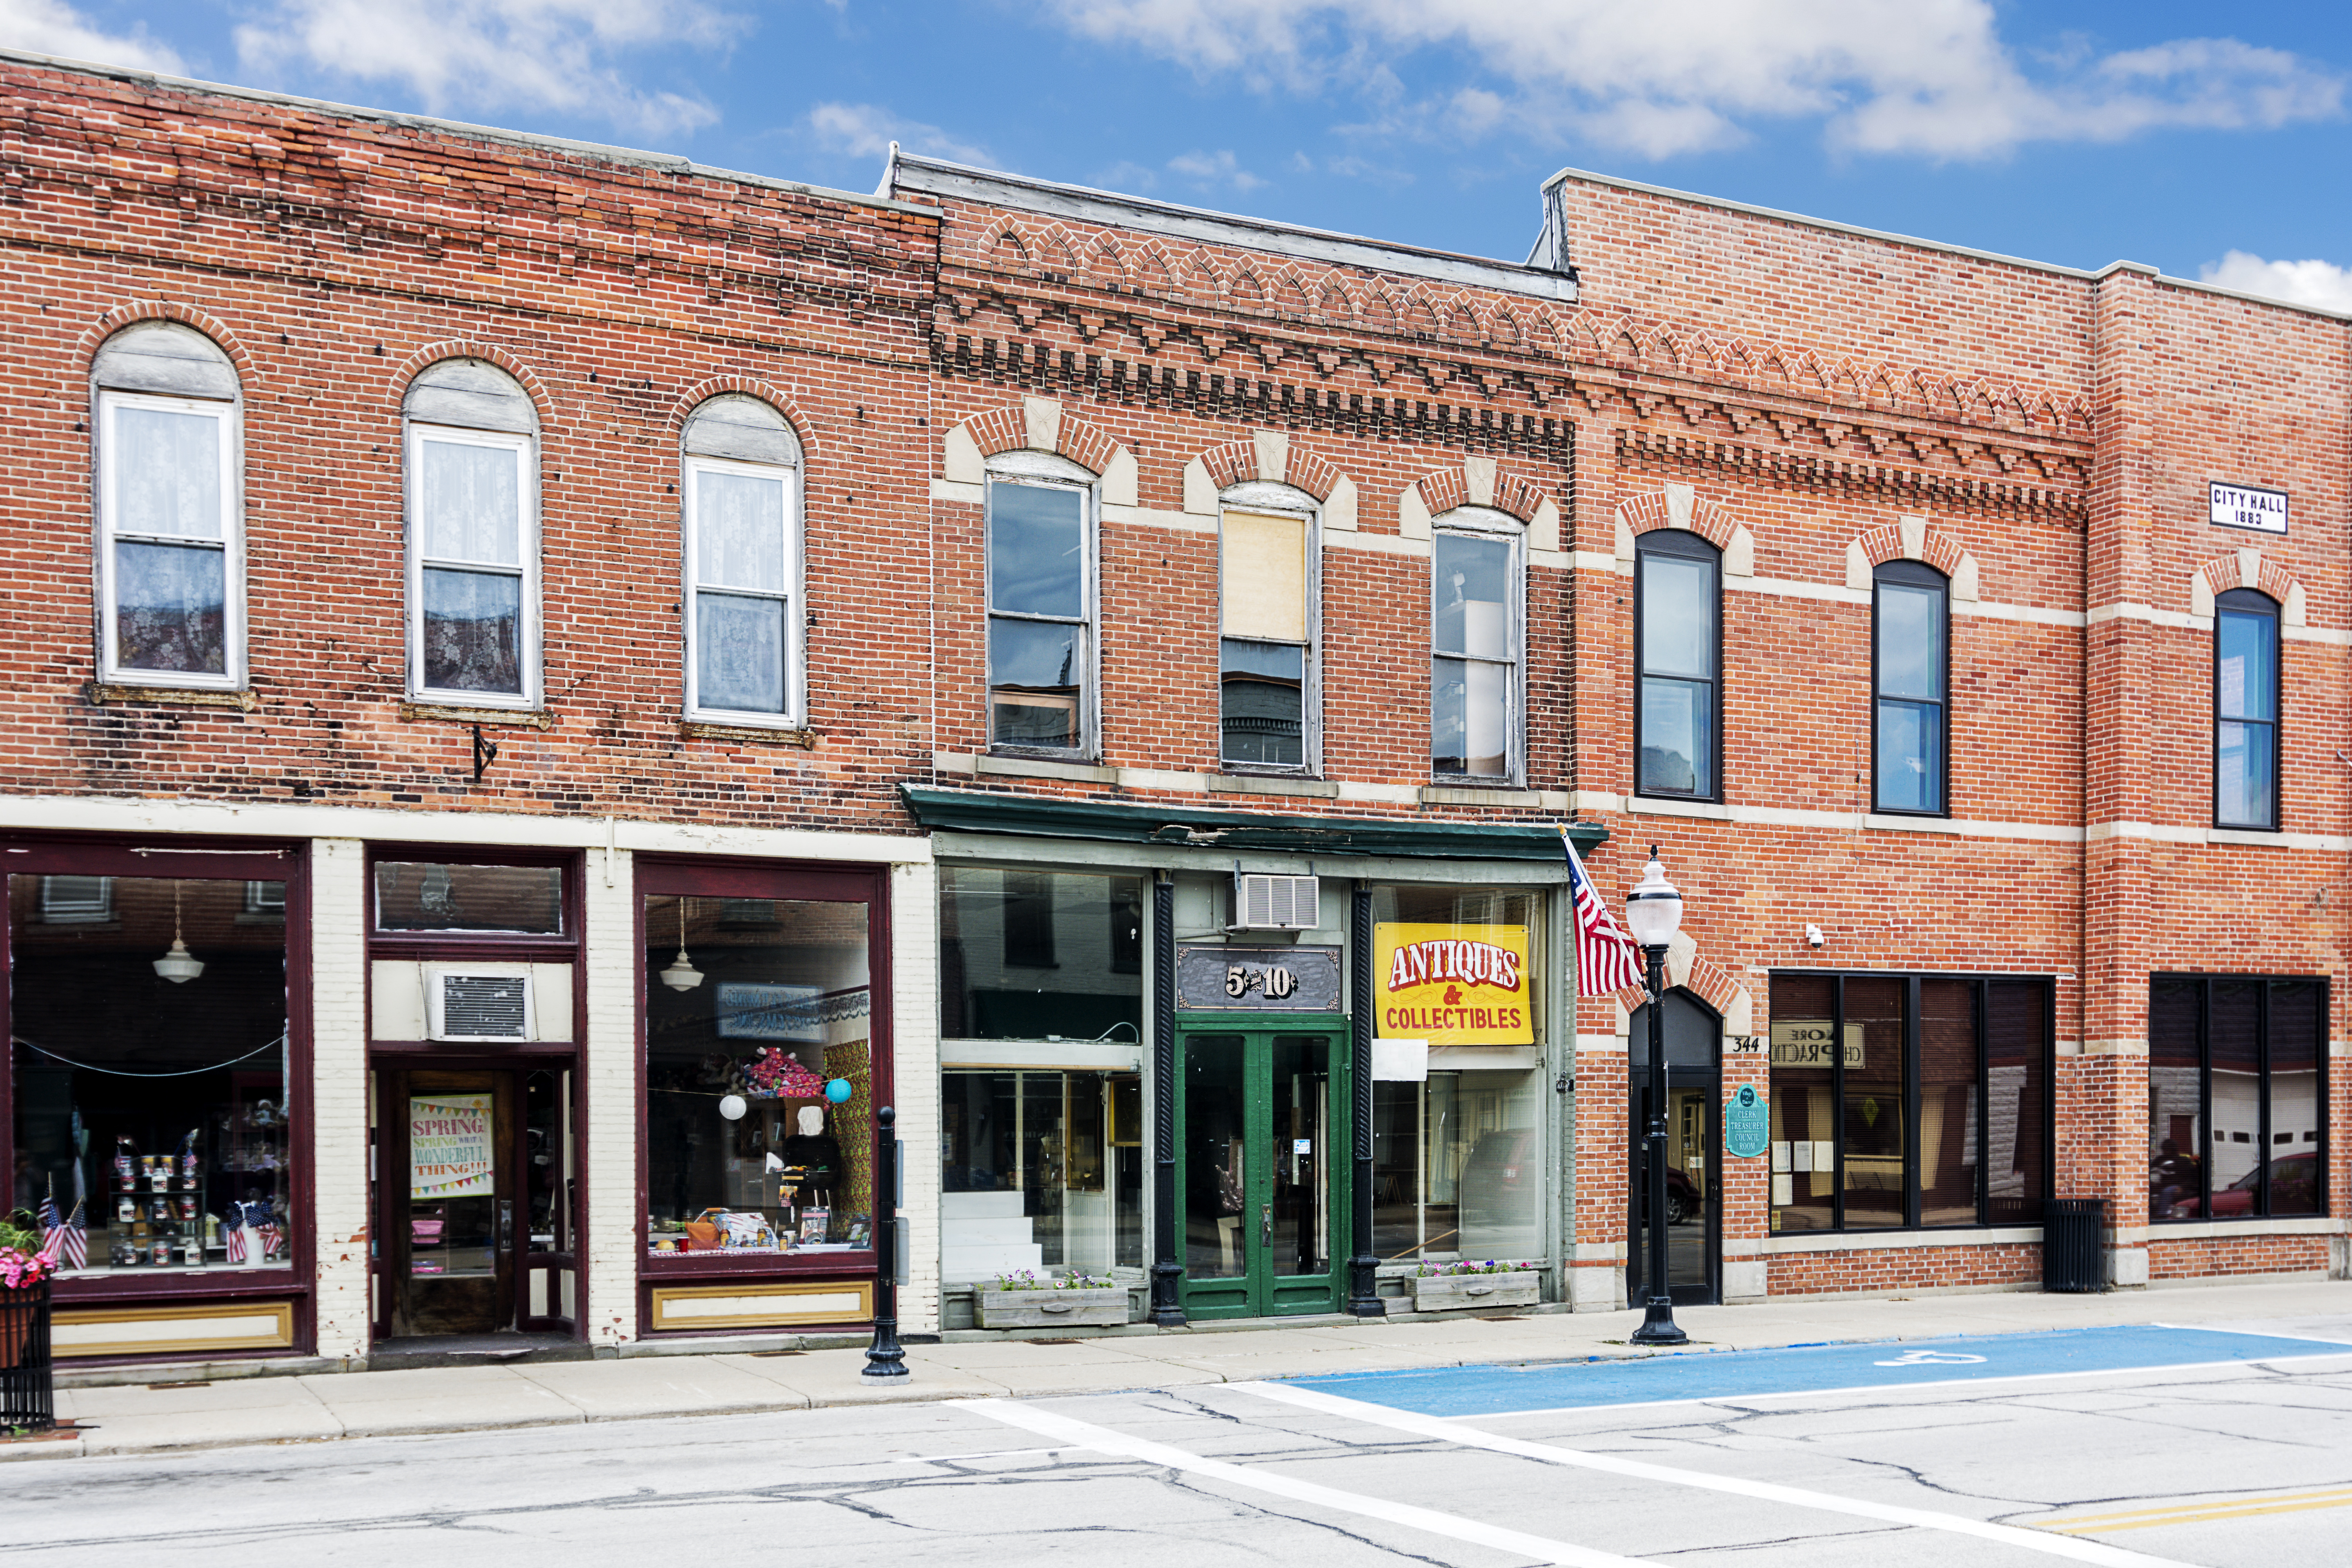 A photo of a typical small town main street in the United States of America. Features old brick buildings with specialty shops and restaurants including an old five and dime store. Decorated with spring flowers and American flags.